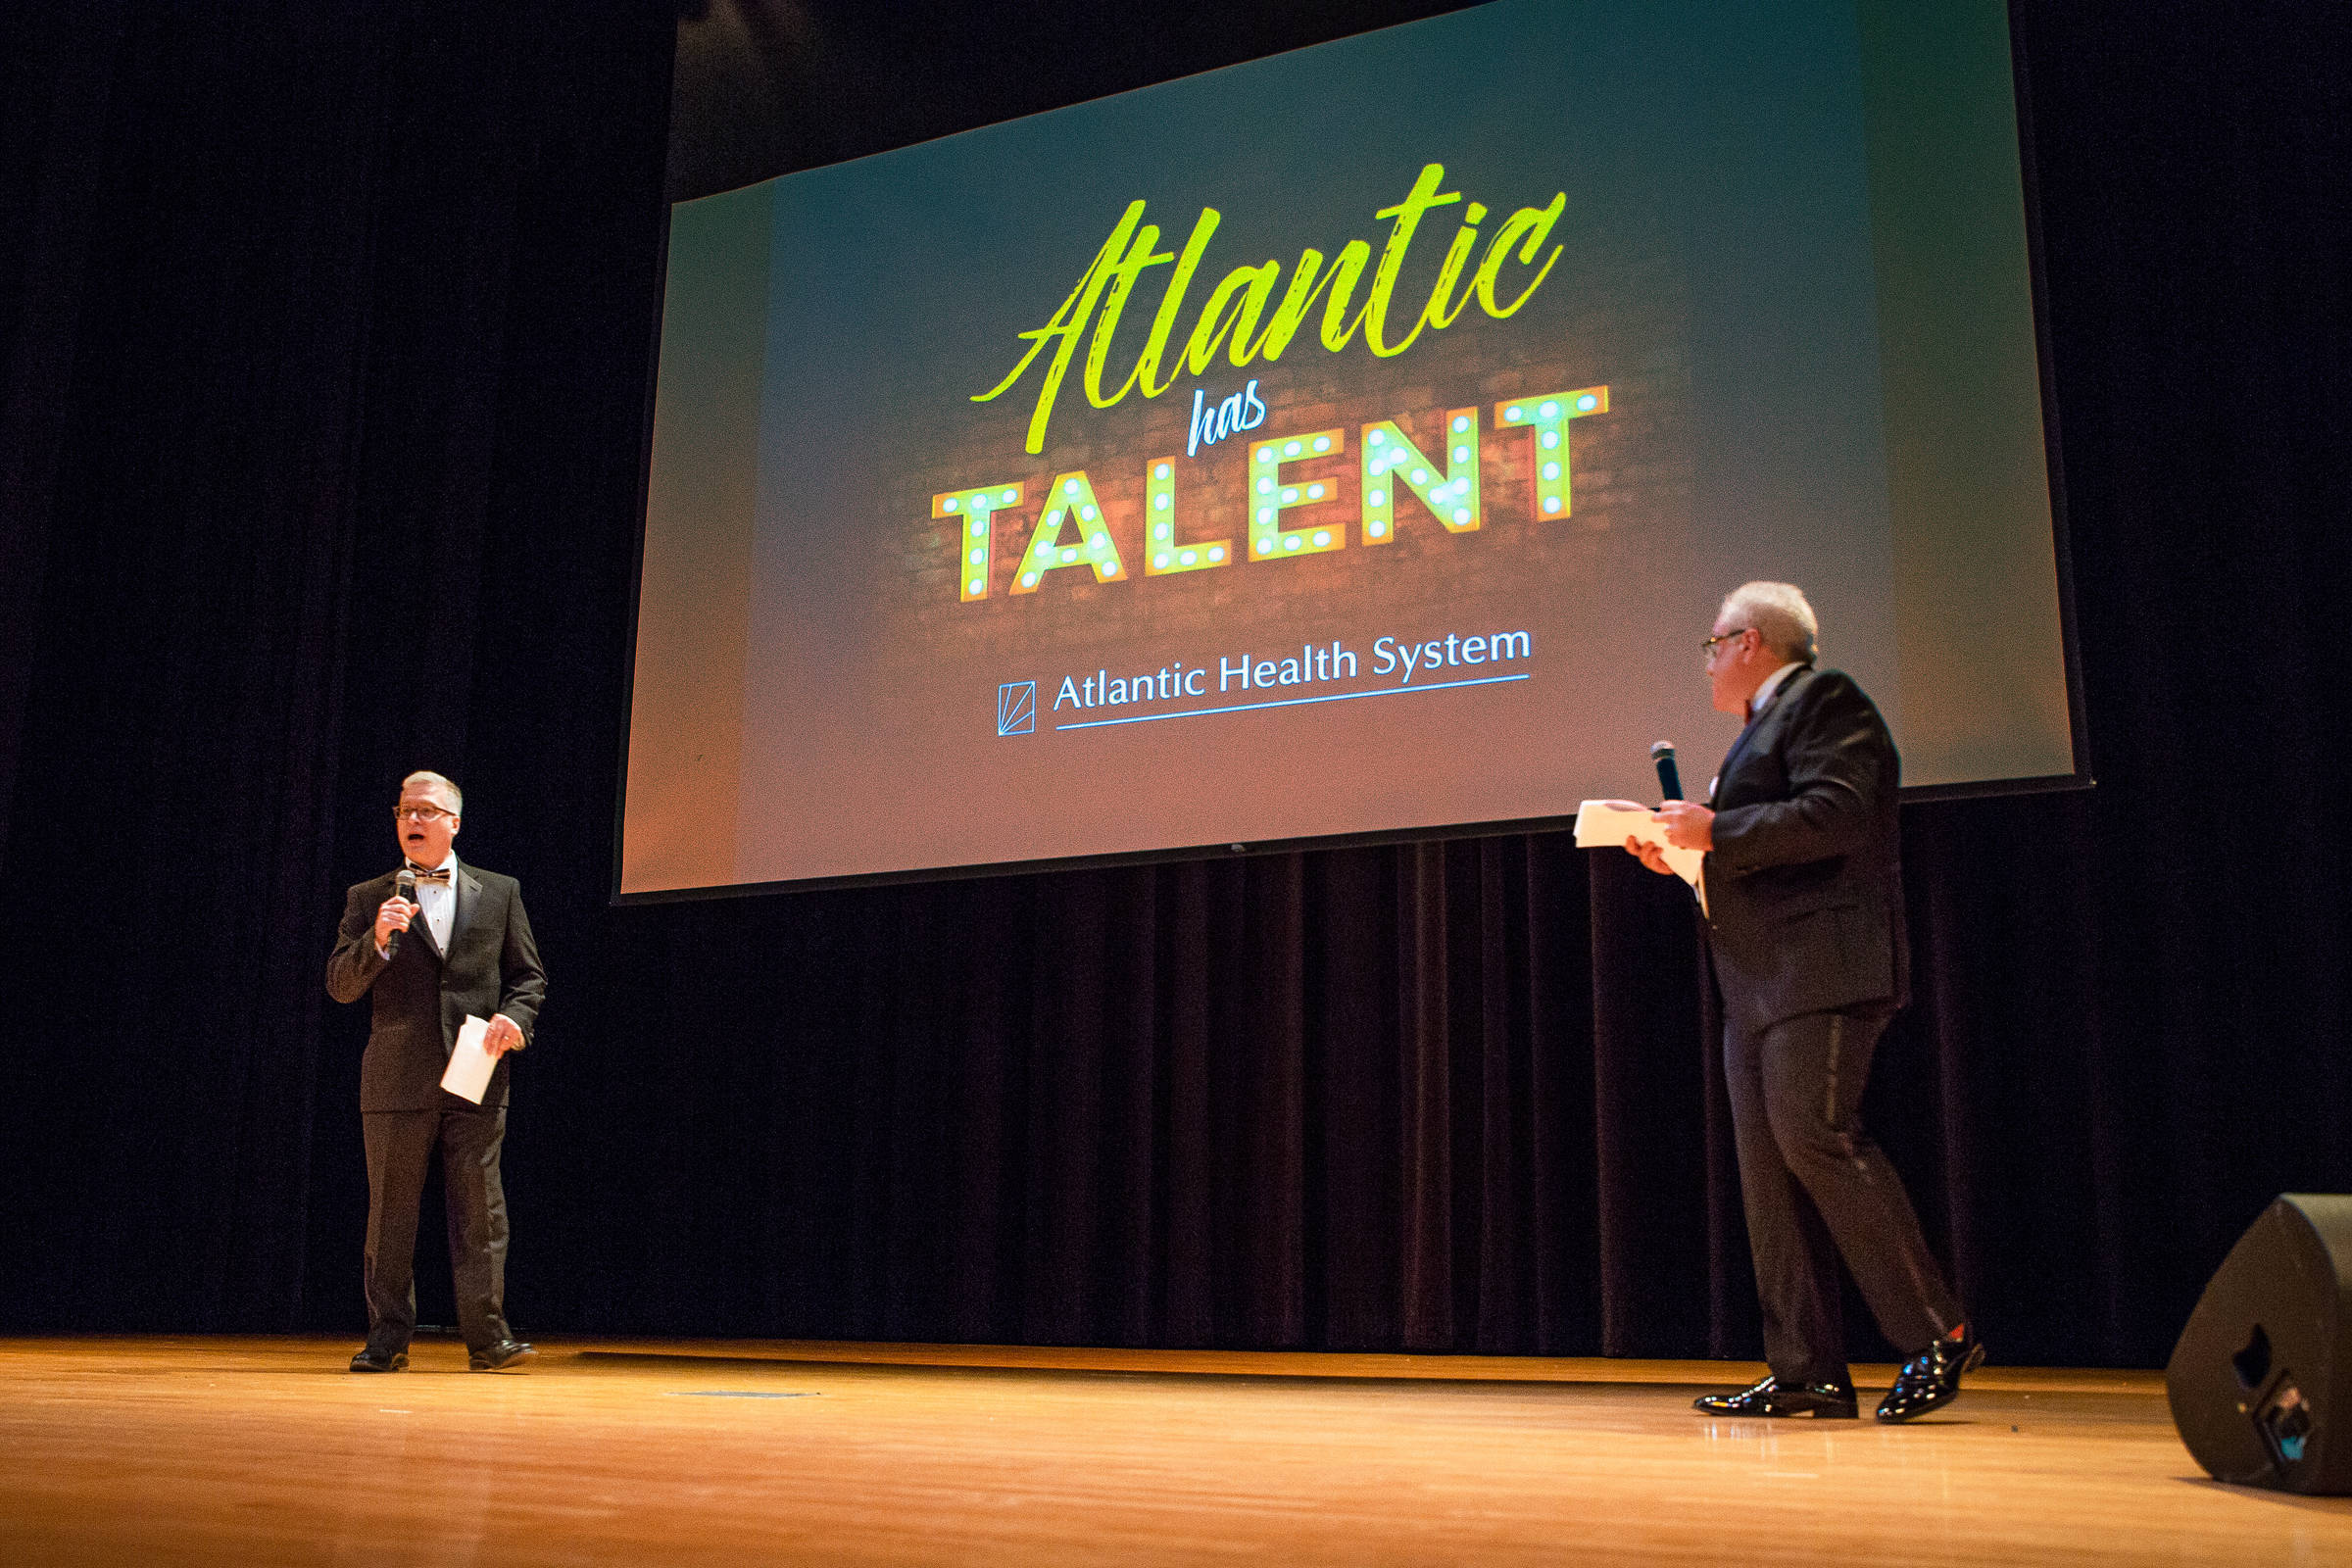 Atlantic Has Talent1